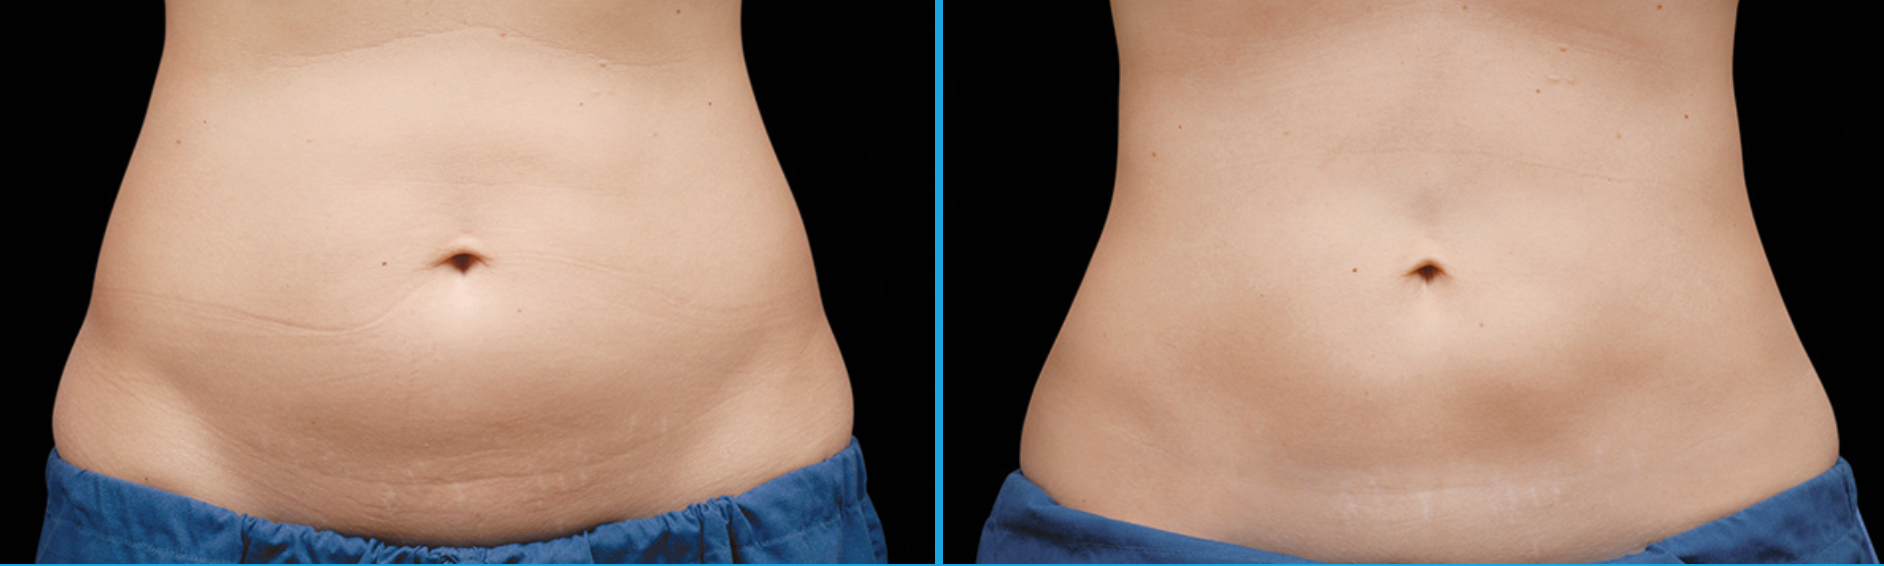 Coolsculpting Abdomen Before and After in Santa Monica